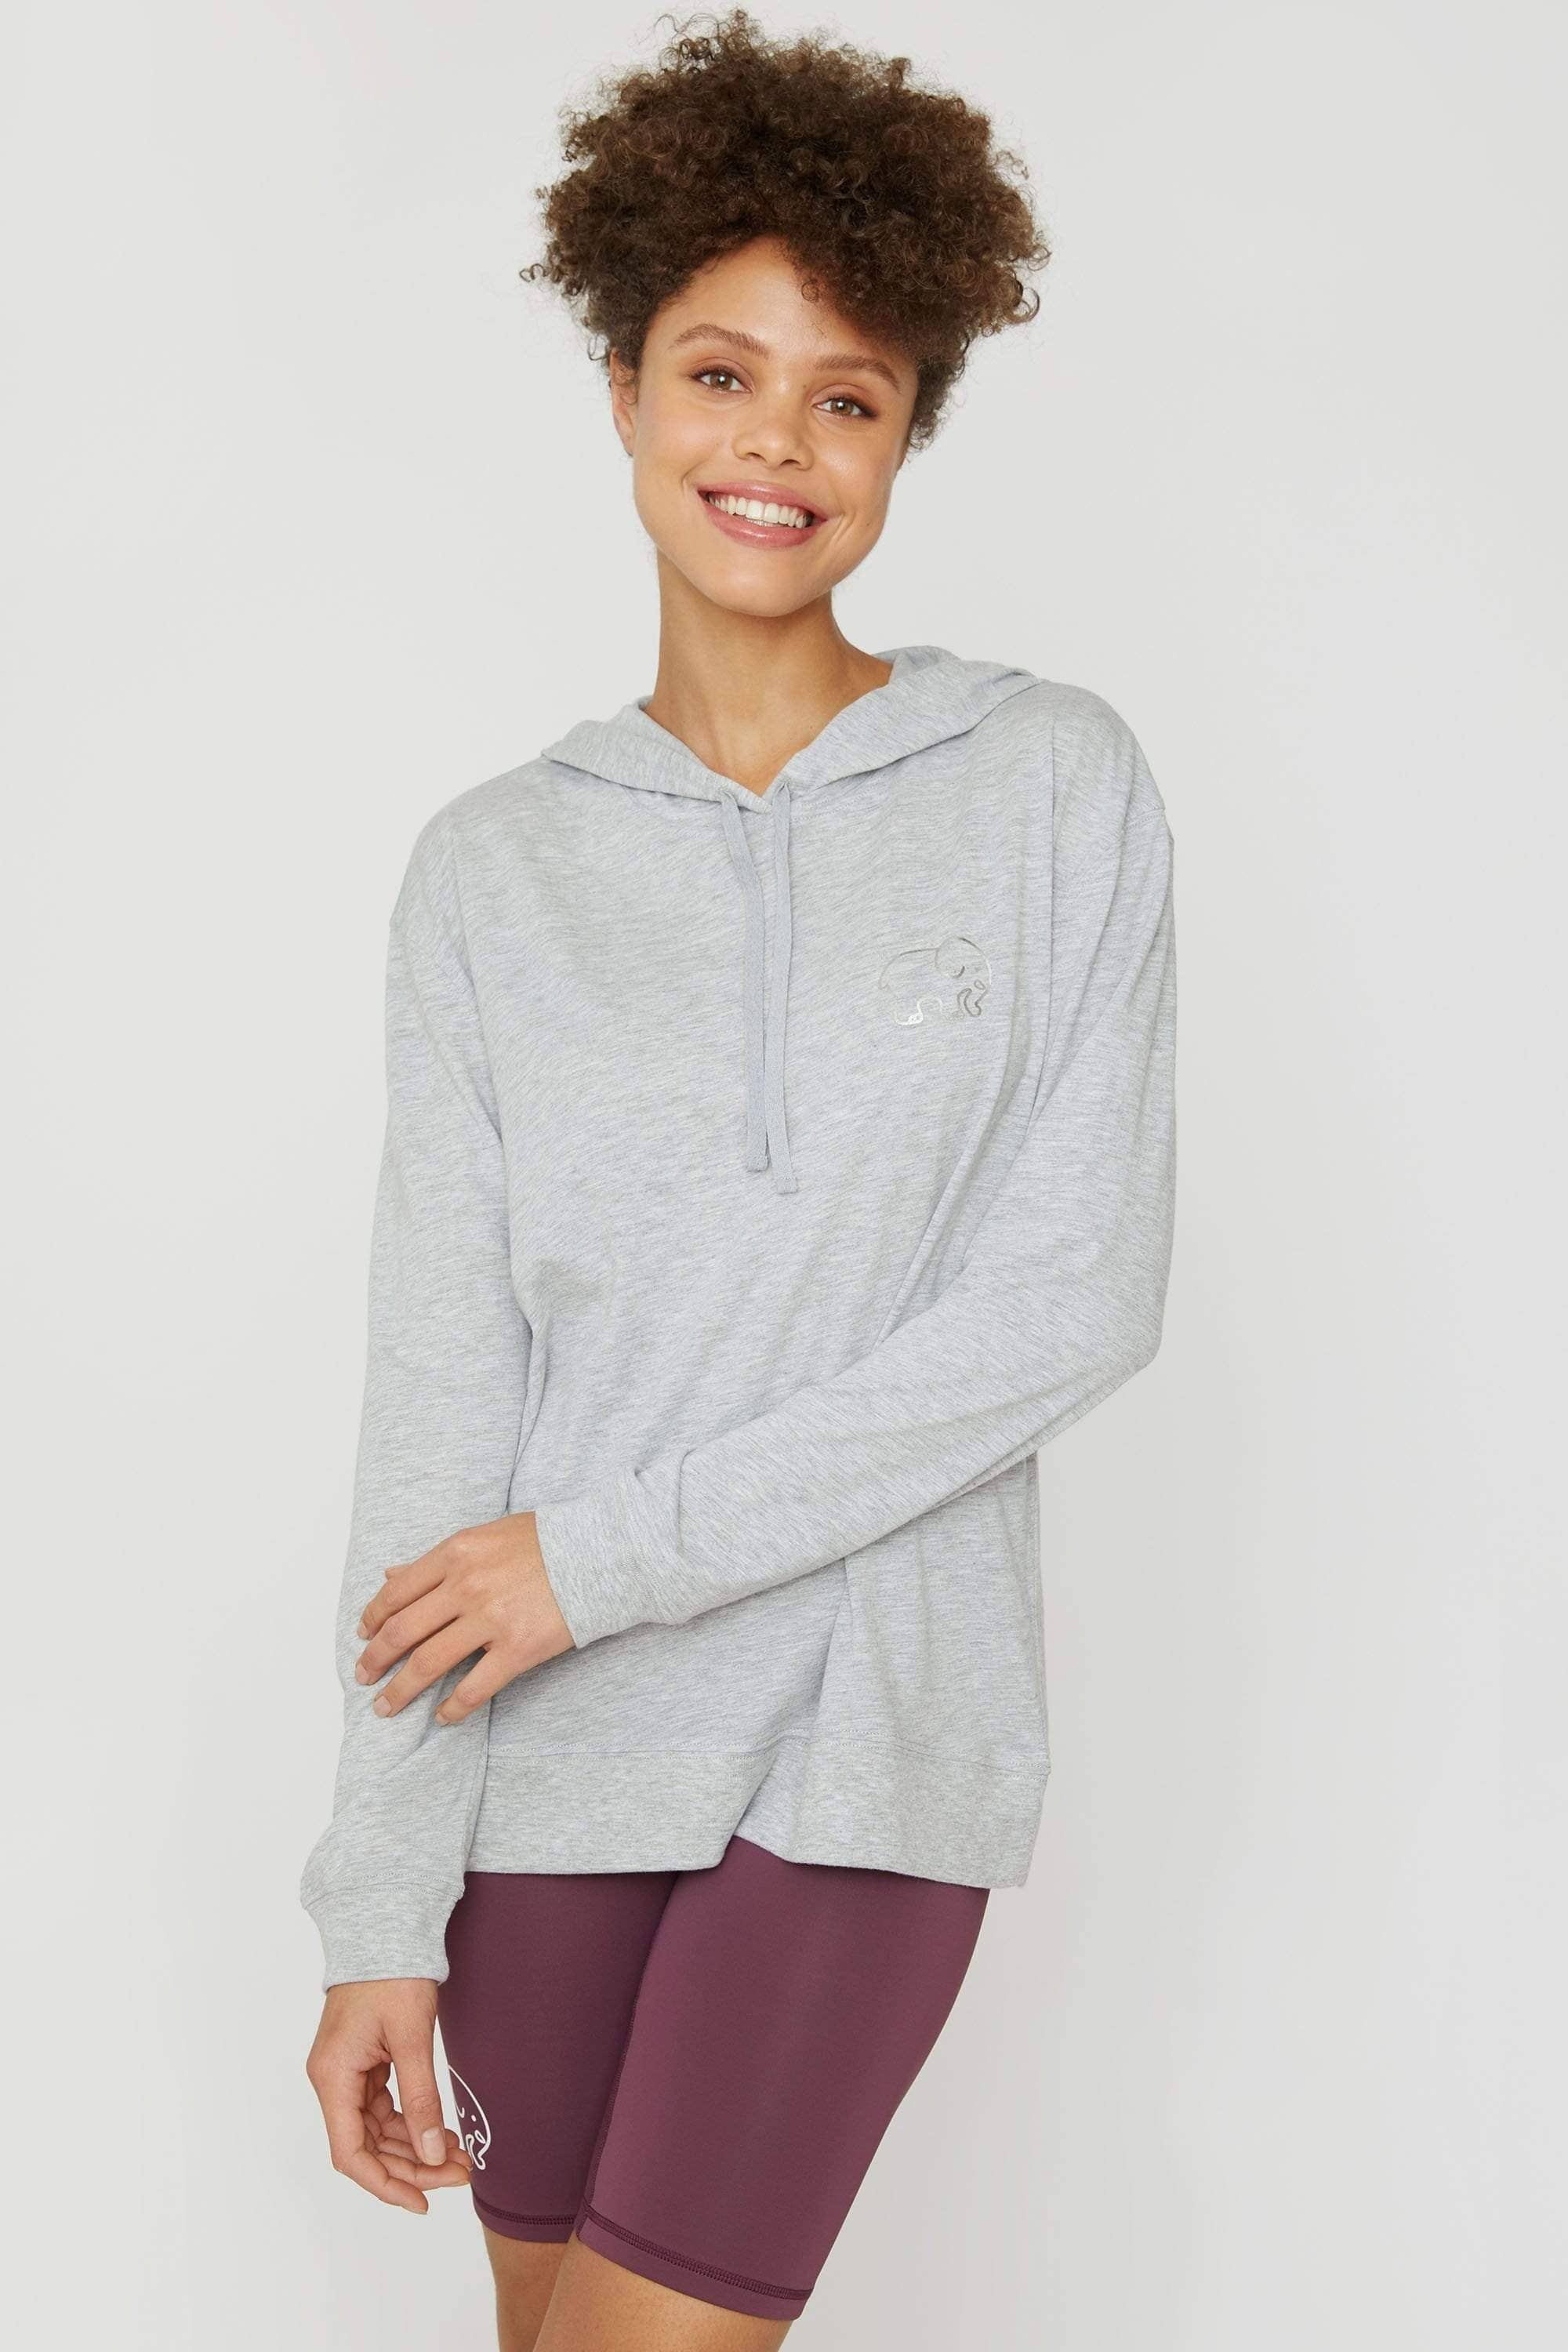 Ivory Ella Women's Sweatshirts Light Heather Grey Tshirt Hoodie